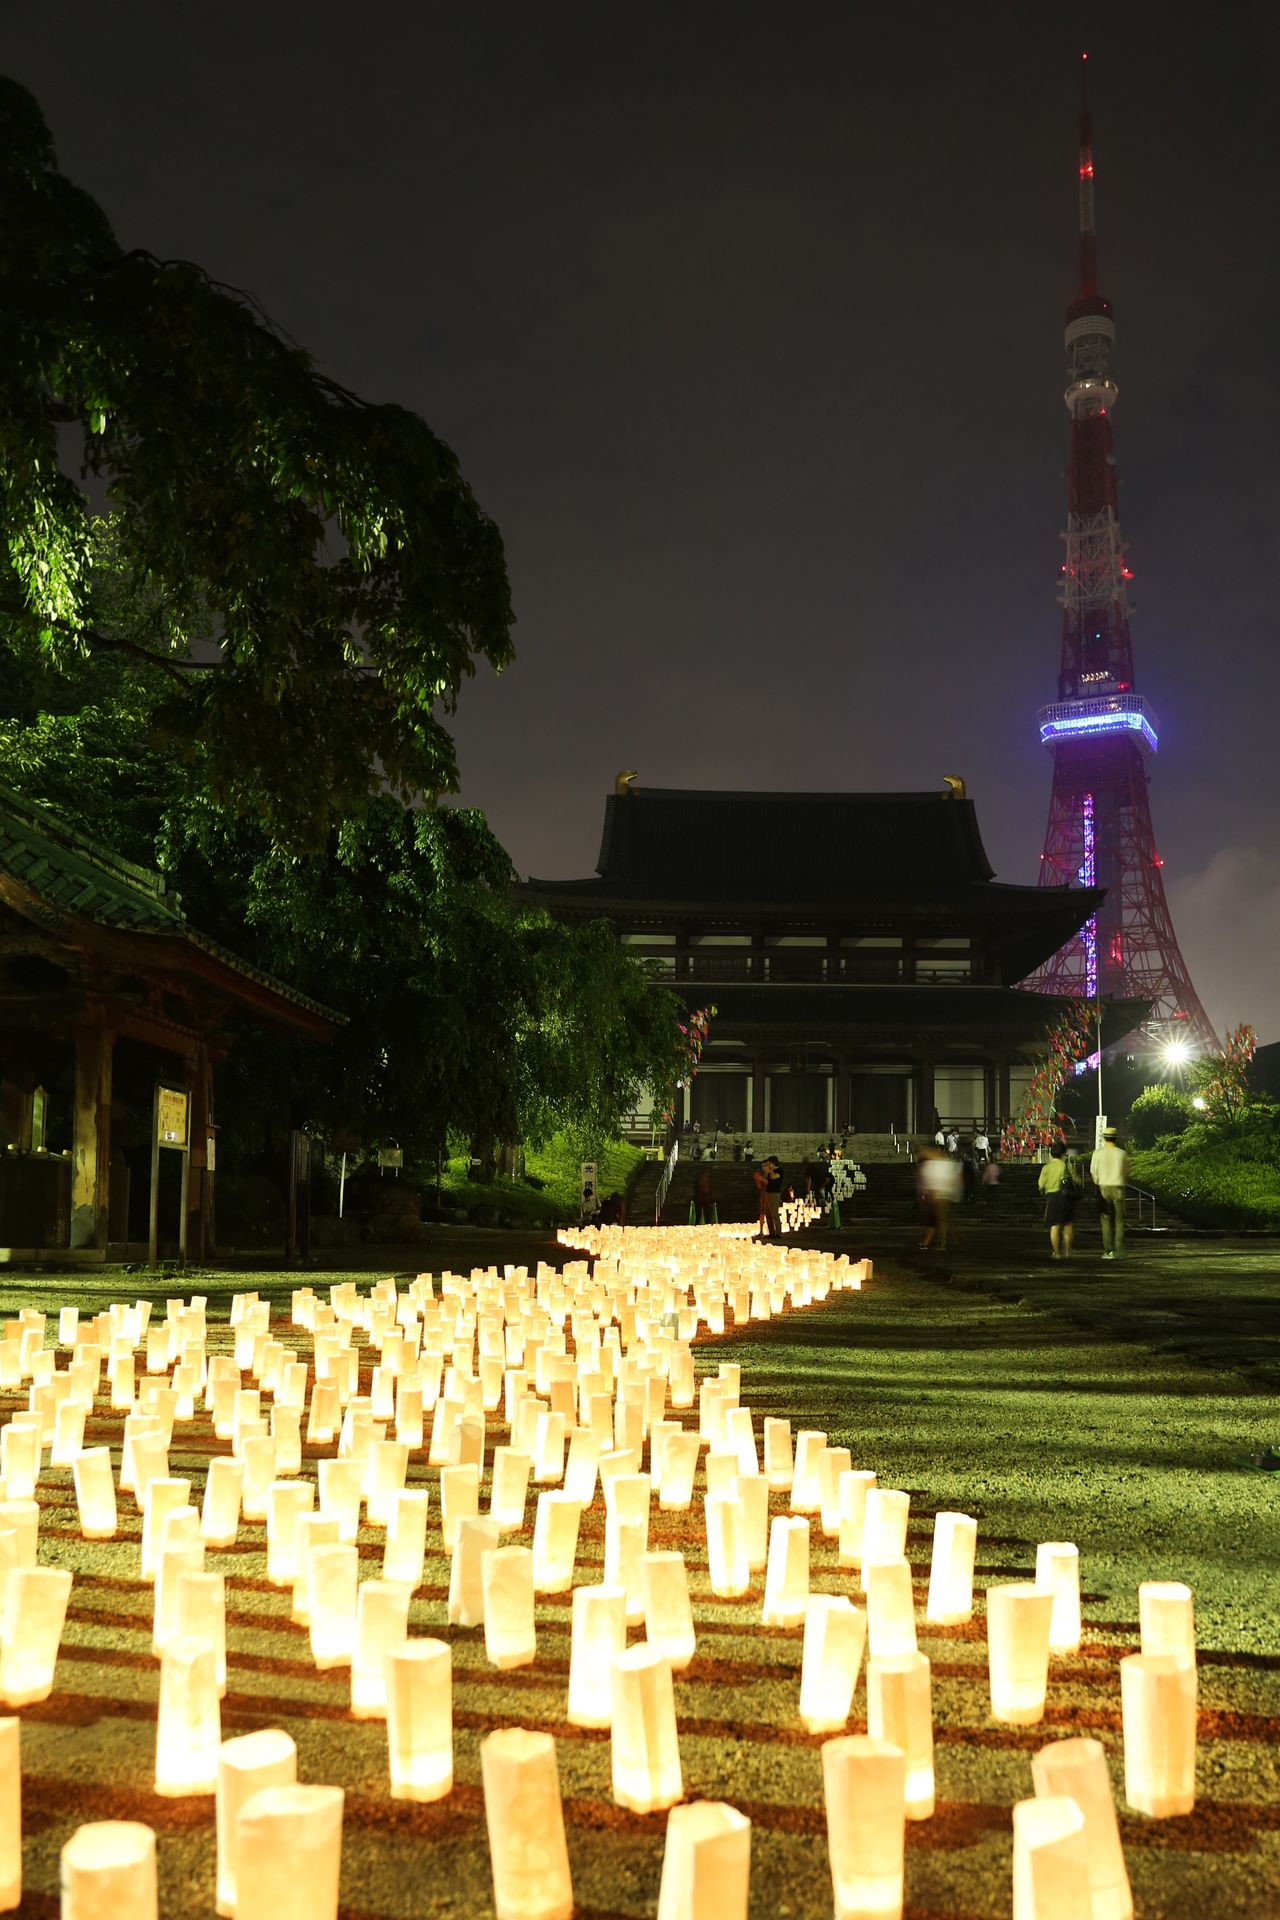 2015  Candle Light Candle Night Candle Night At Zojozi Event Illuminated Japan Lamp Light Night Tokyo キャンドルナイト 増上寺 東京タワー Tokyo Tower Zojoji Temple 天の川 Milky Way River